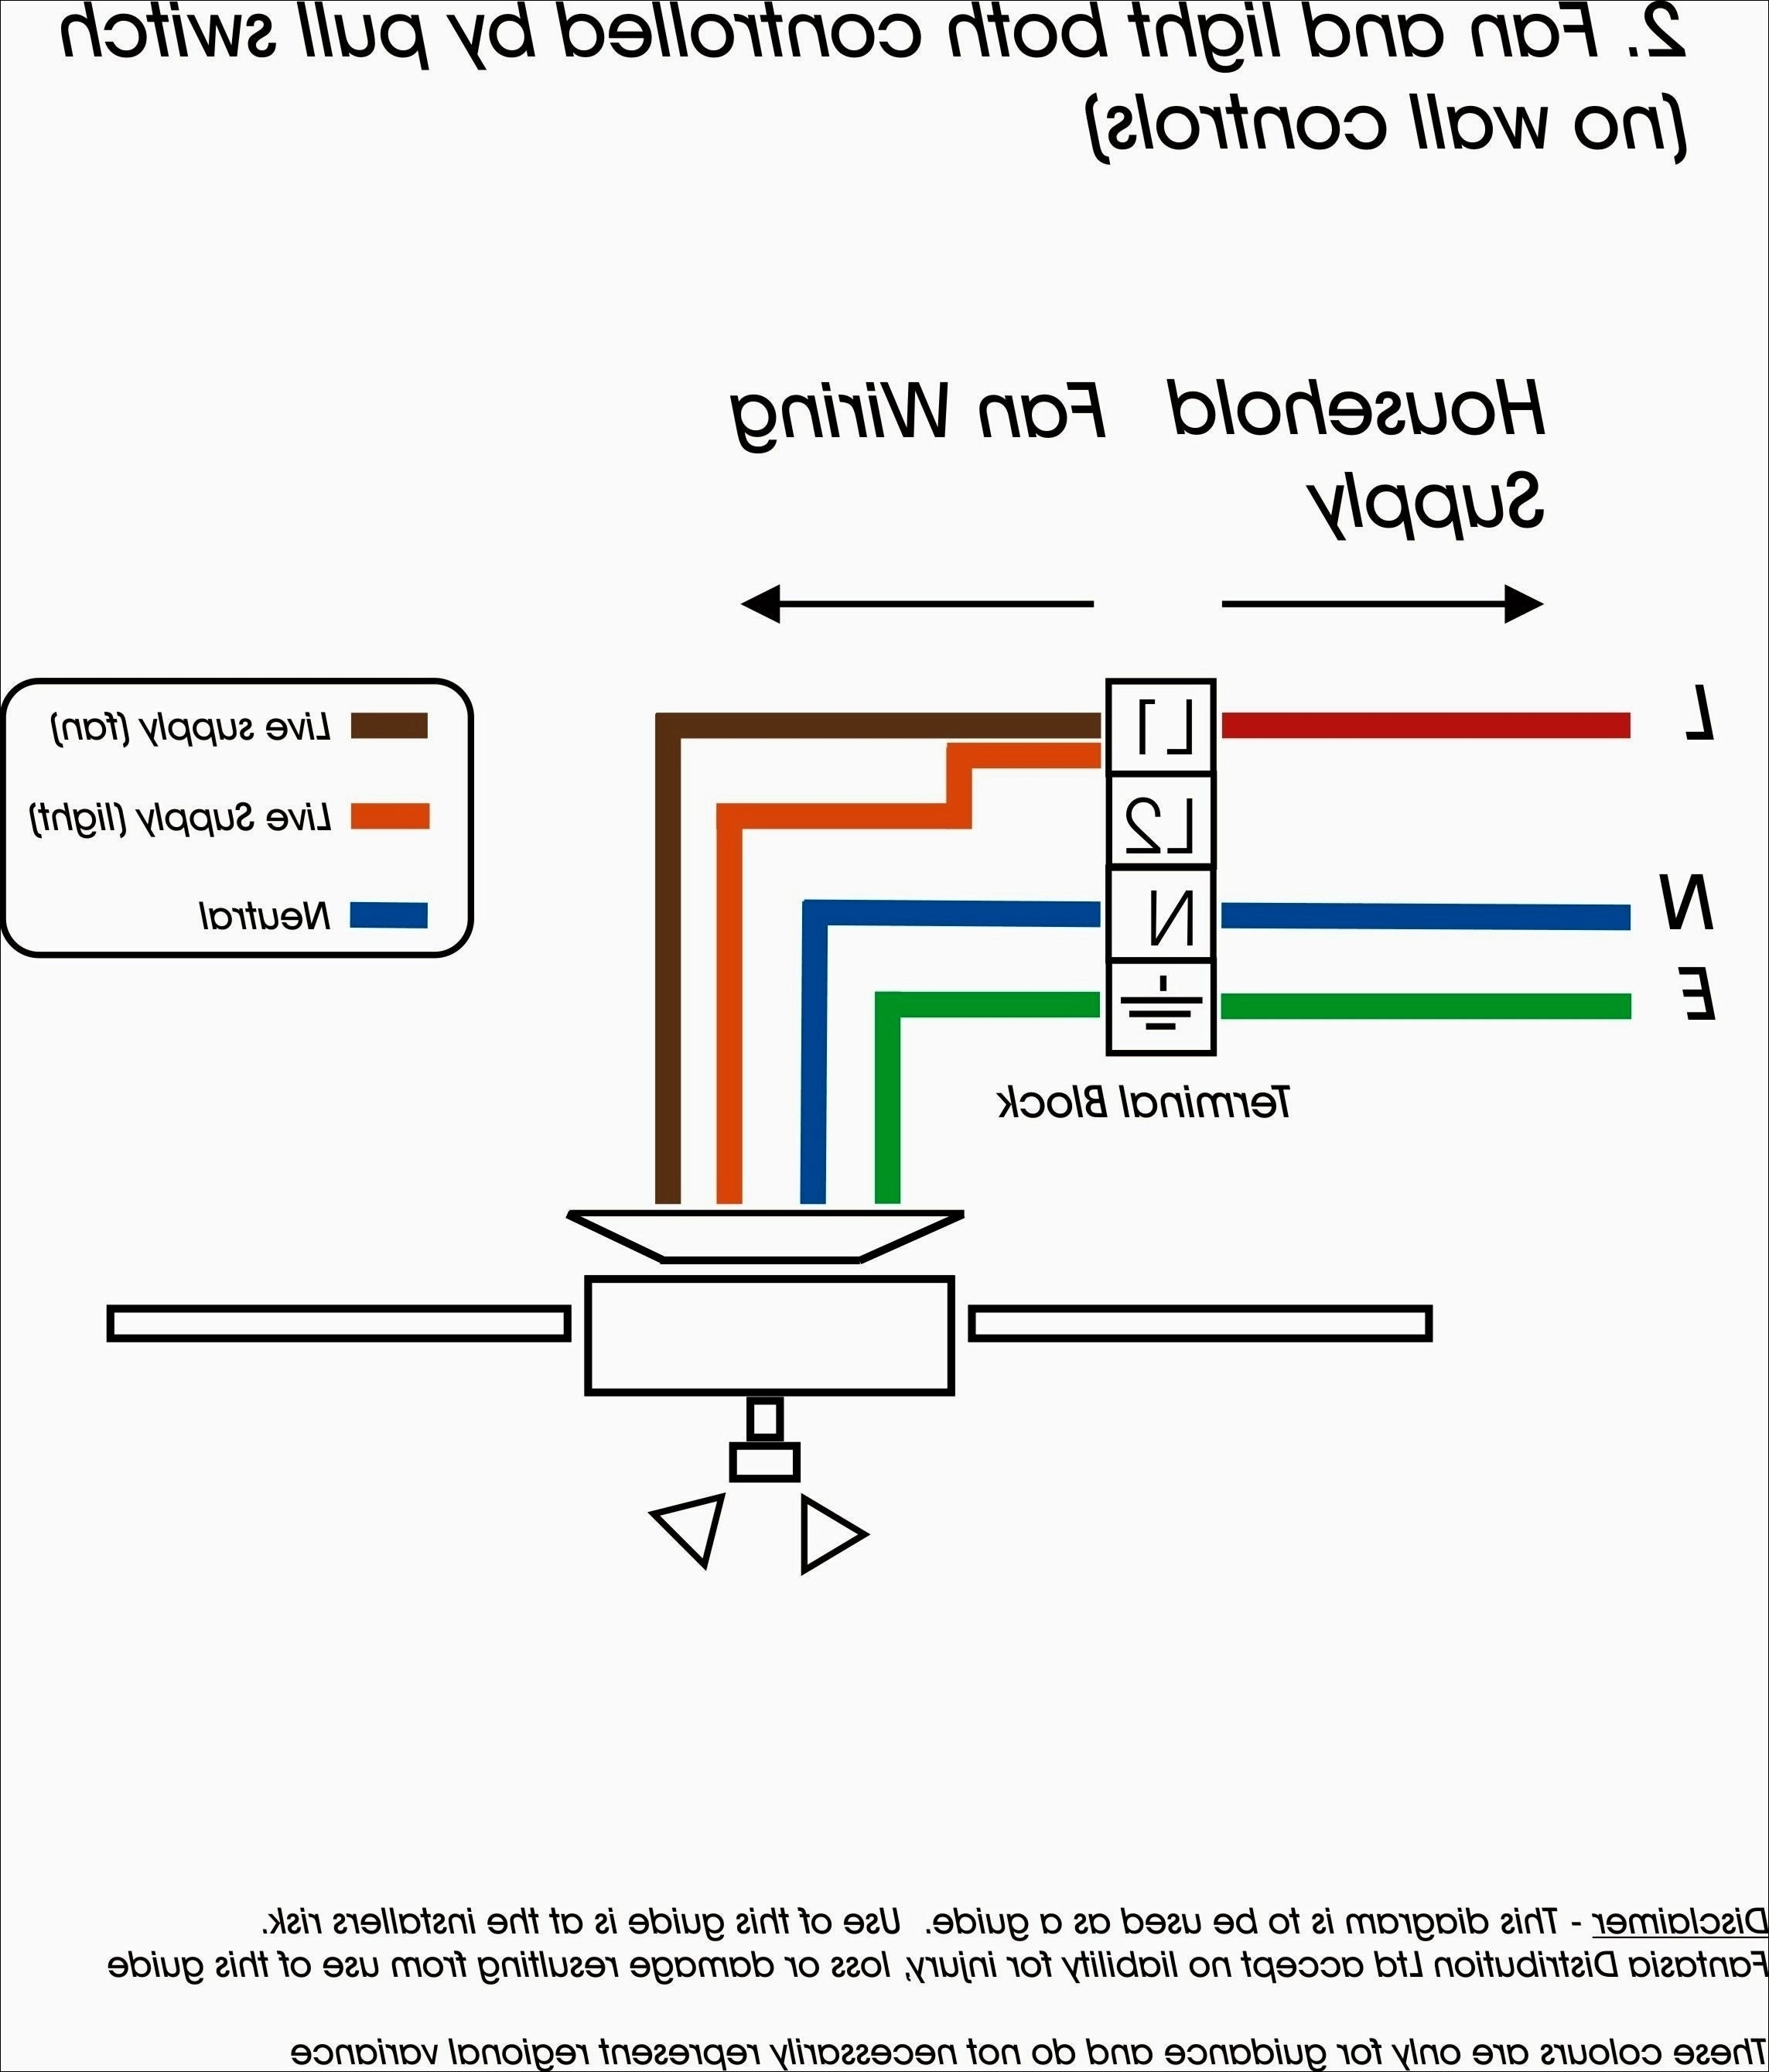 twin tube fluorescent light wiring diagram Download-Wiring Diagram for Fluorescent Light Fixture New Fluorescent Light Wiring Diagram Fresh Wiring Diagram for Light 15-r